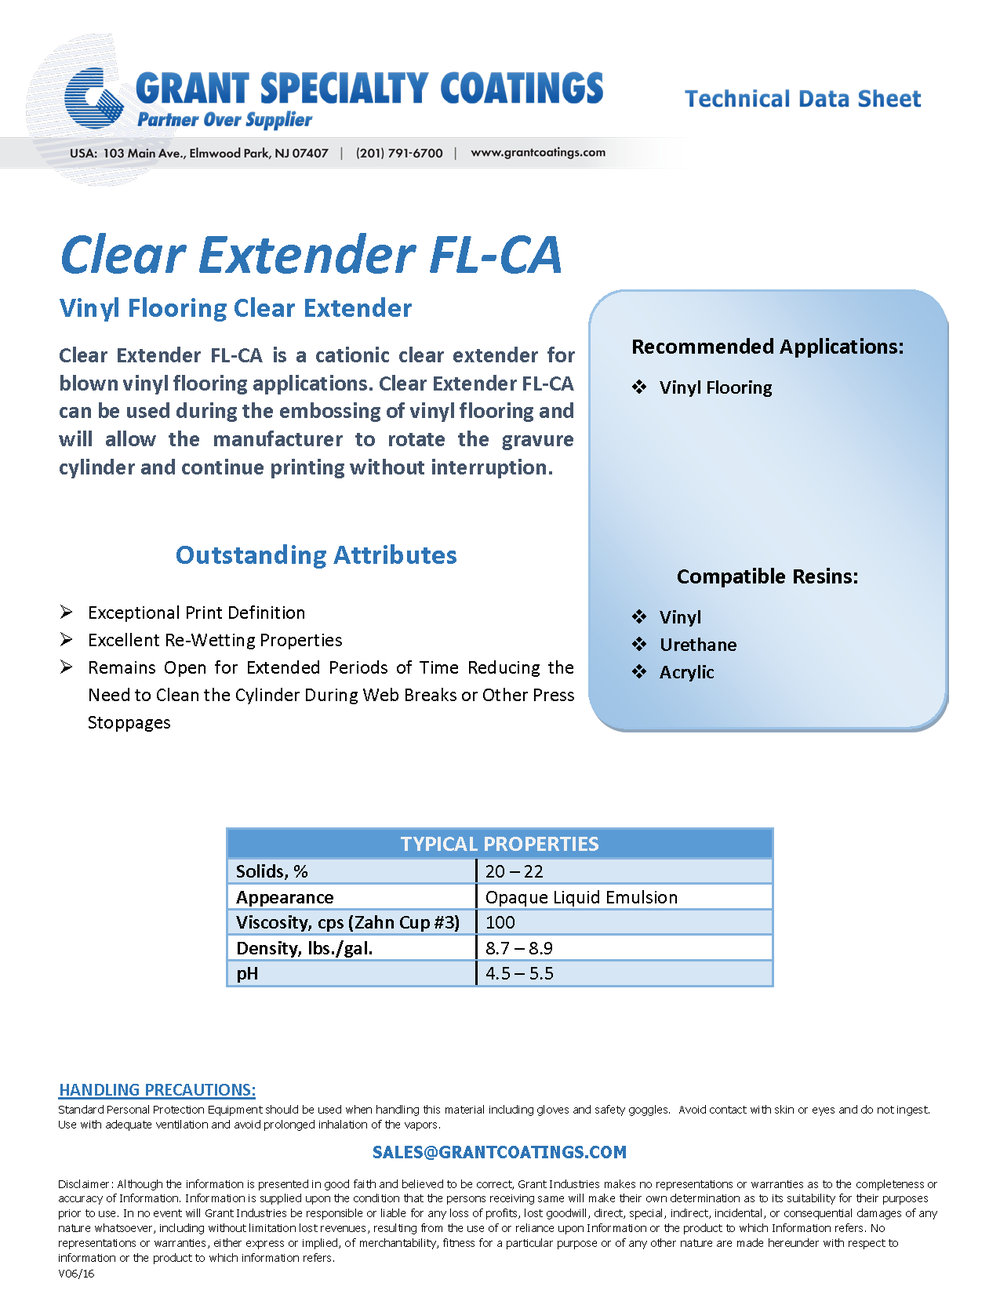 Clear Extender FL-CA for Blown Vinyl Flooring.png